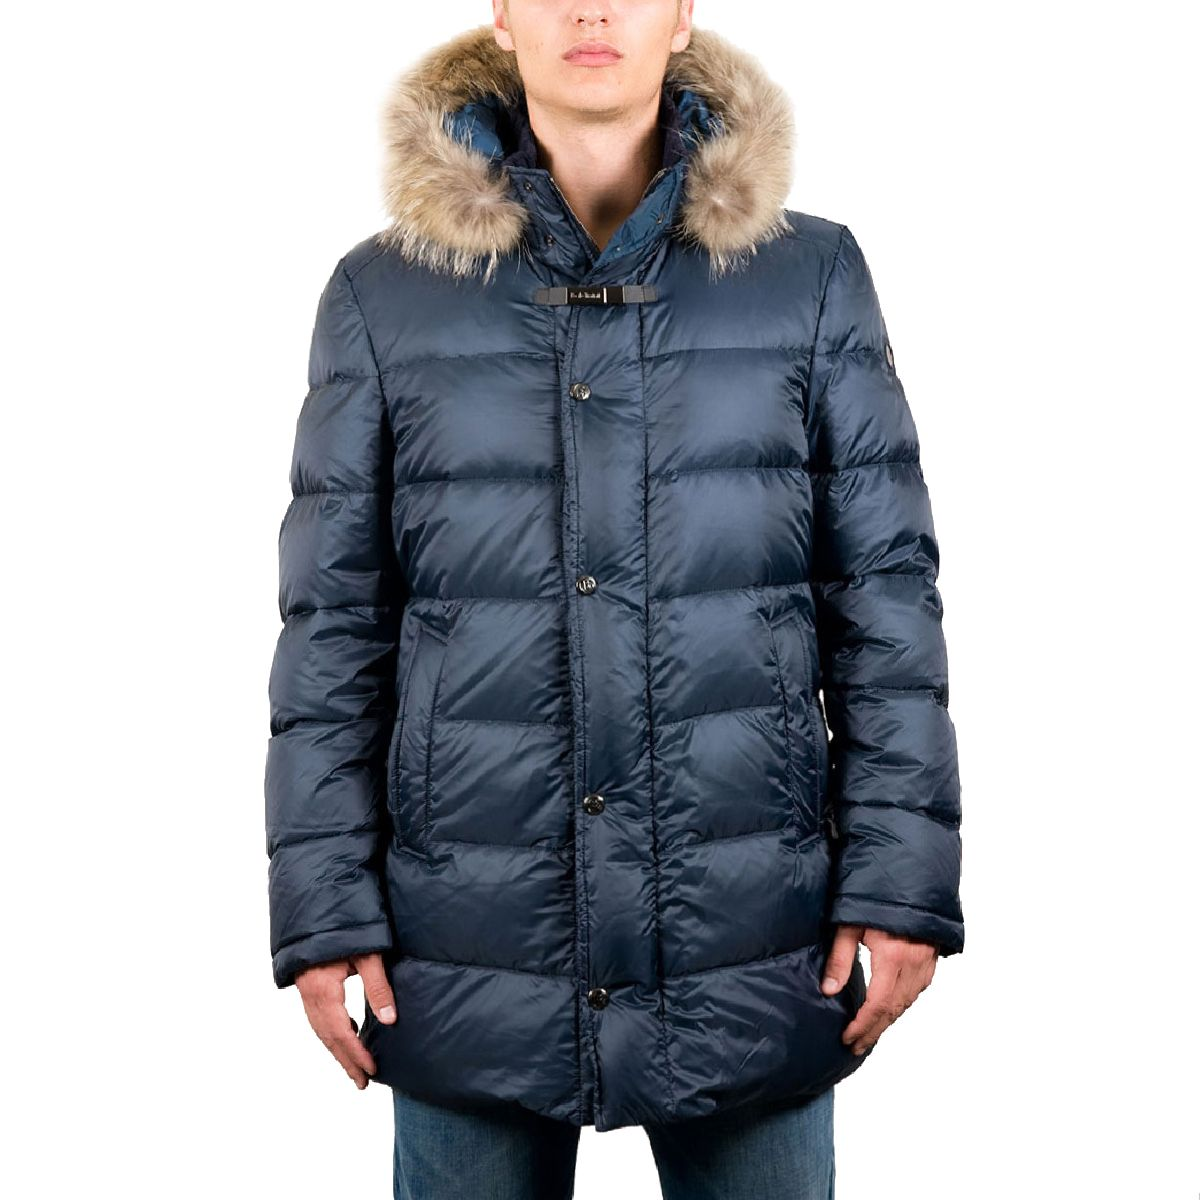 169 9 Shop Downjackettoparea Com Cannadagoose Jackets Is On Clearance Sale The World Lowest Price The Best Ch Giacca Con Cappuccio Giacca Cappuccio Rosso